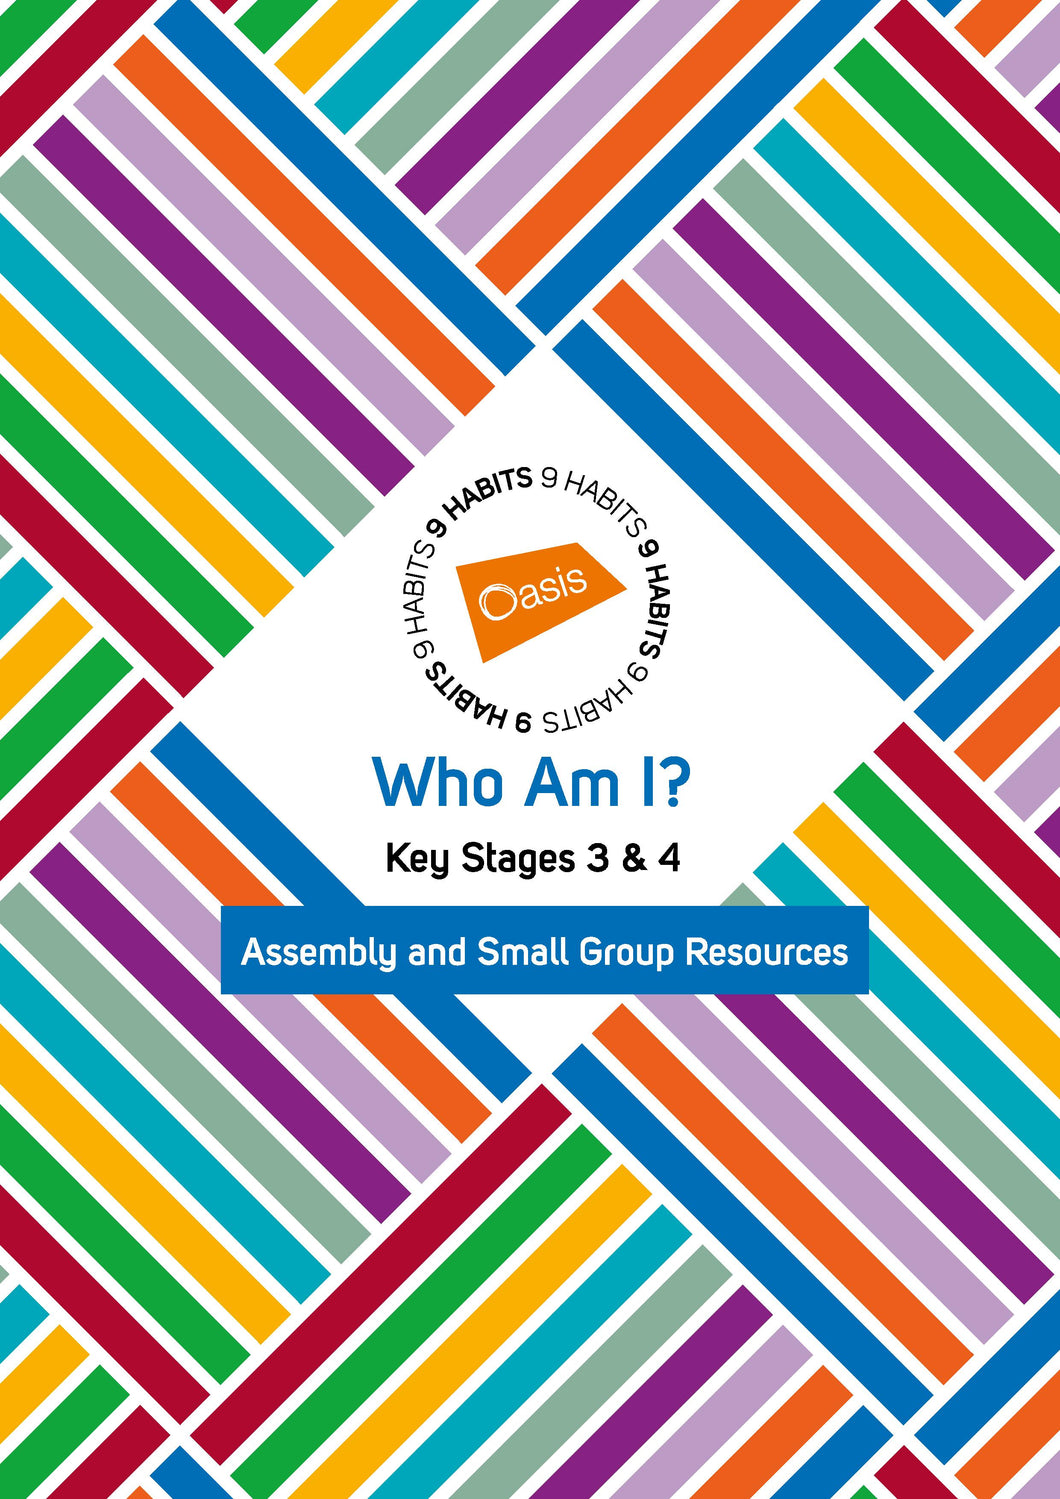 Who Am I? | Key Stages 3 & 4 | Assembly and Small Group Resources